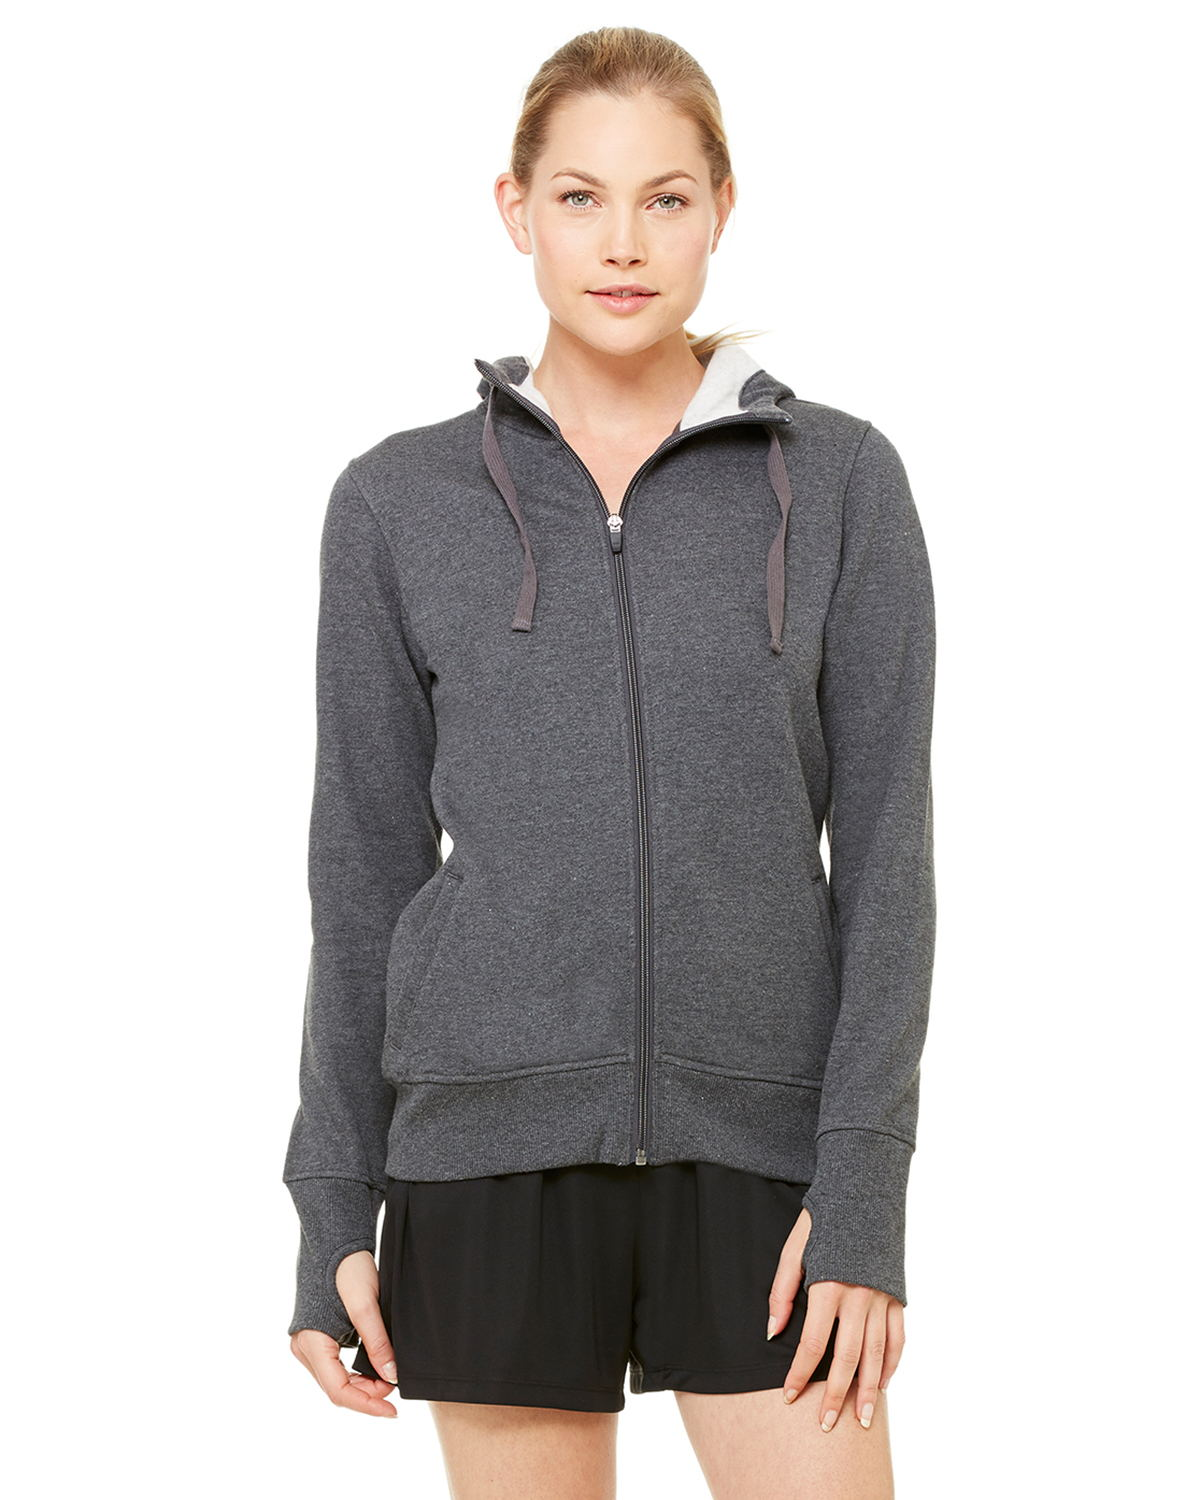 alo - Ladies' Performance Fleece Hooded Full-Zip